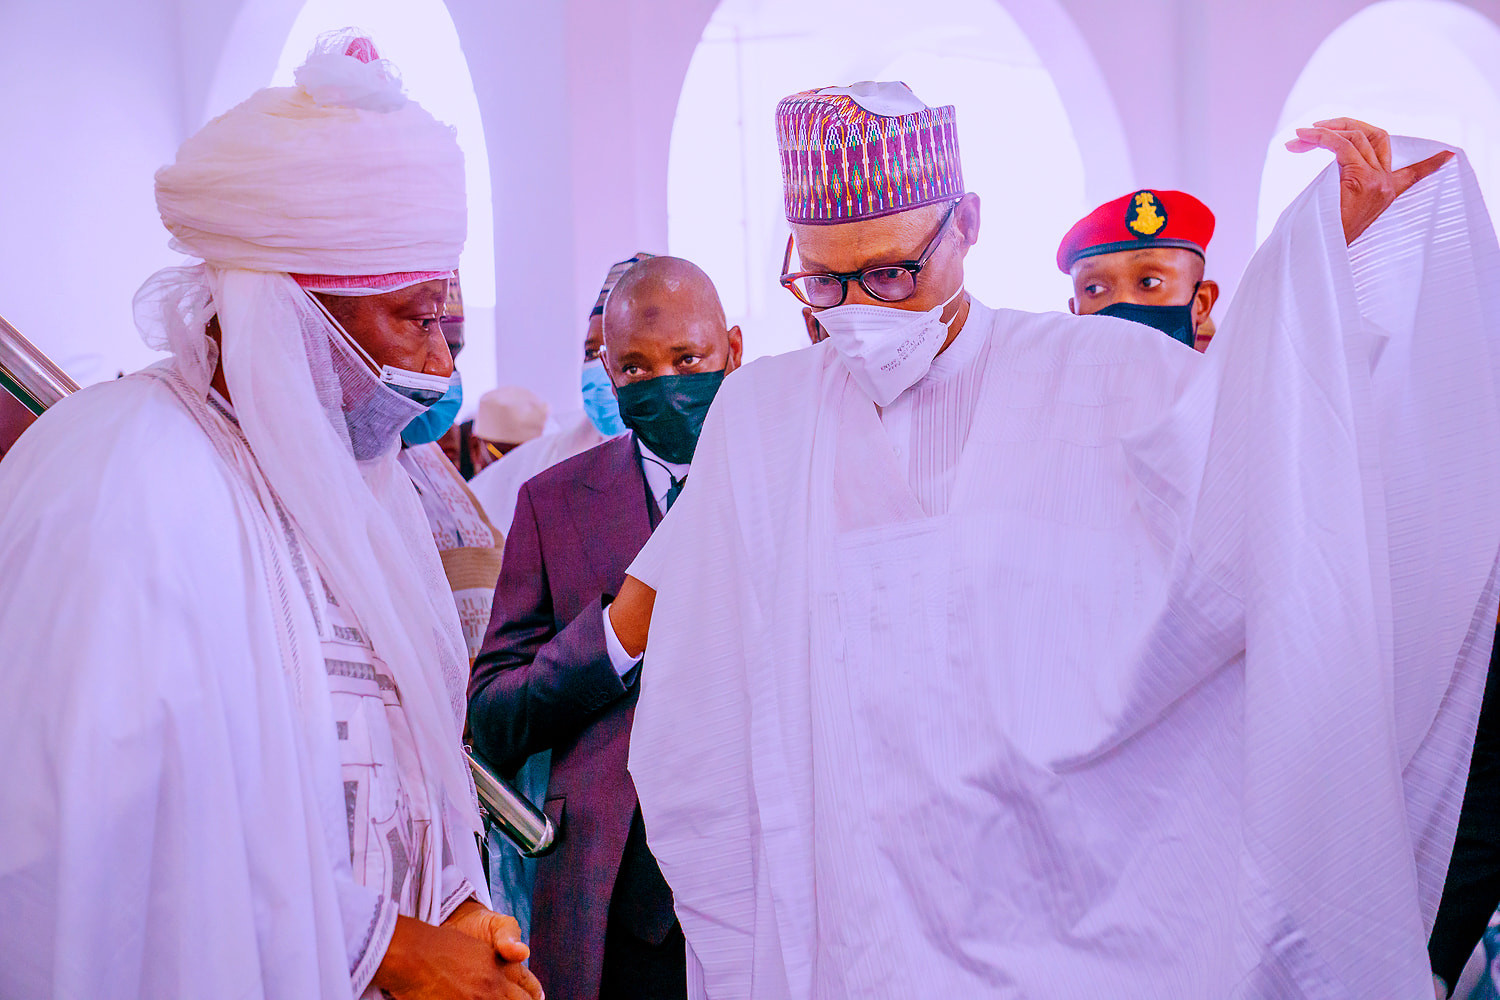 611ffee53af34 - More photos of dignitaries at the wedding of President Buhari's son, Yusuf